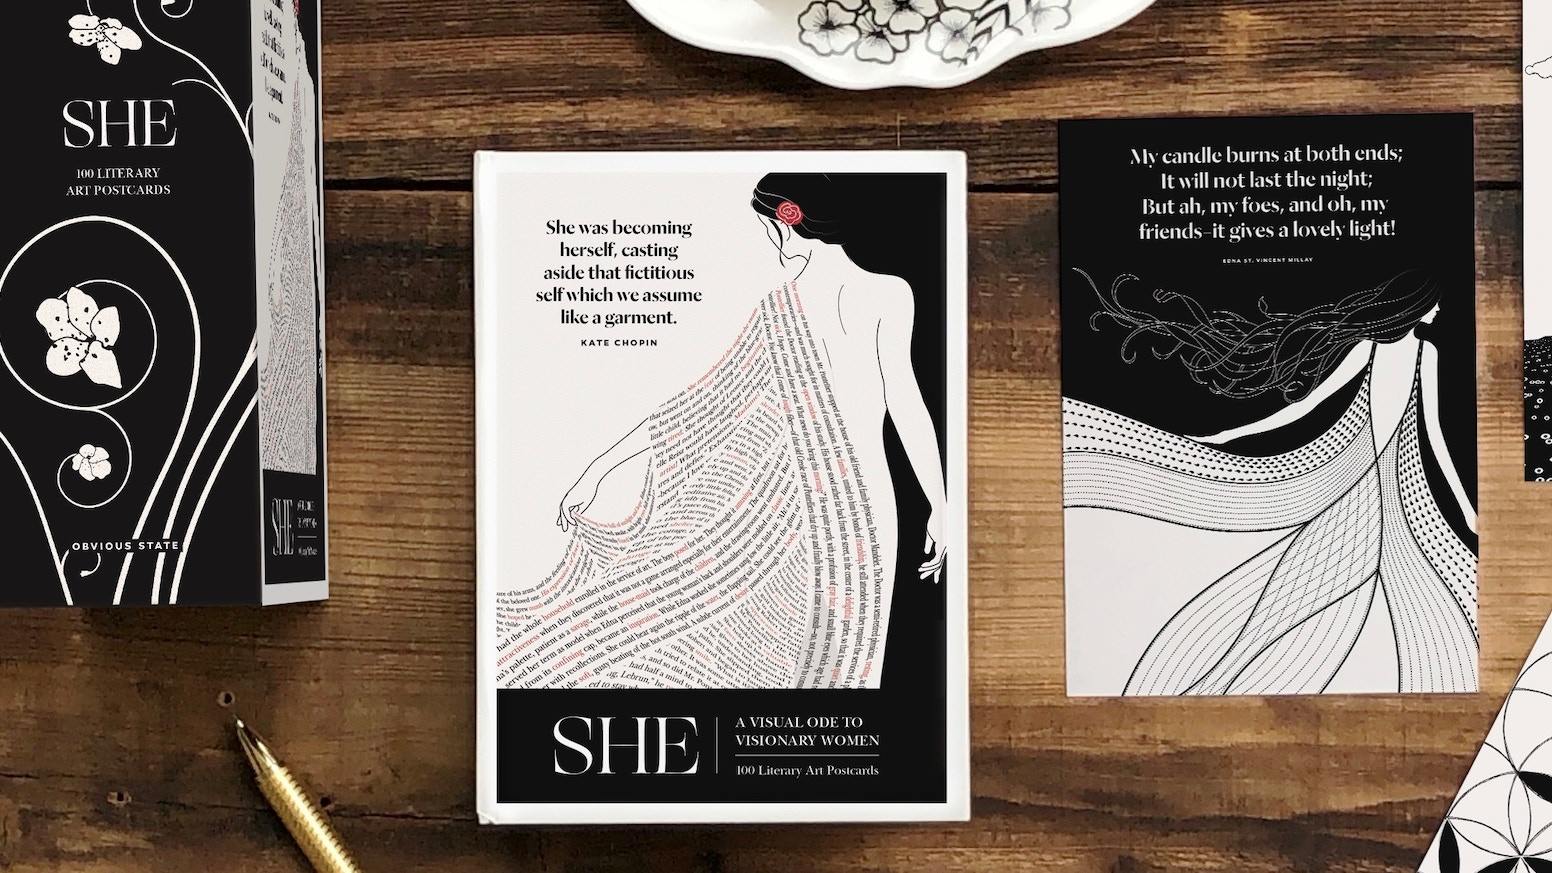 100 artful ways to share the brilliant words of visionary women writers. A keepsake boxed set to collect, share or frame.